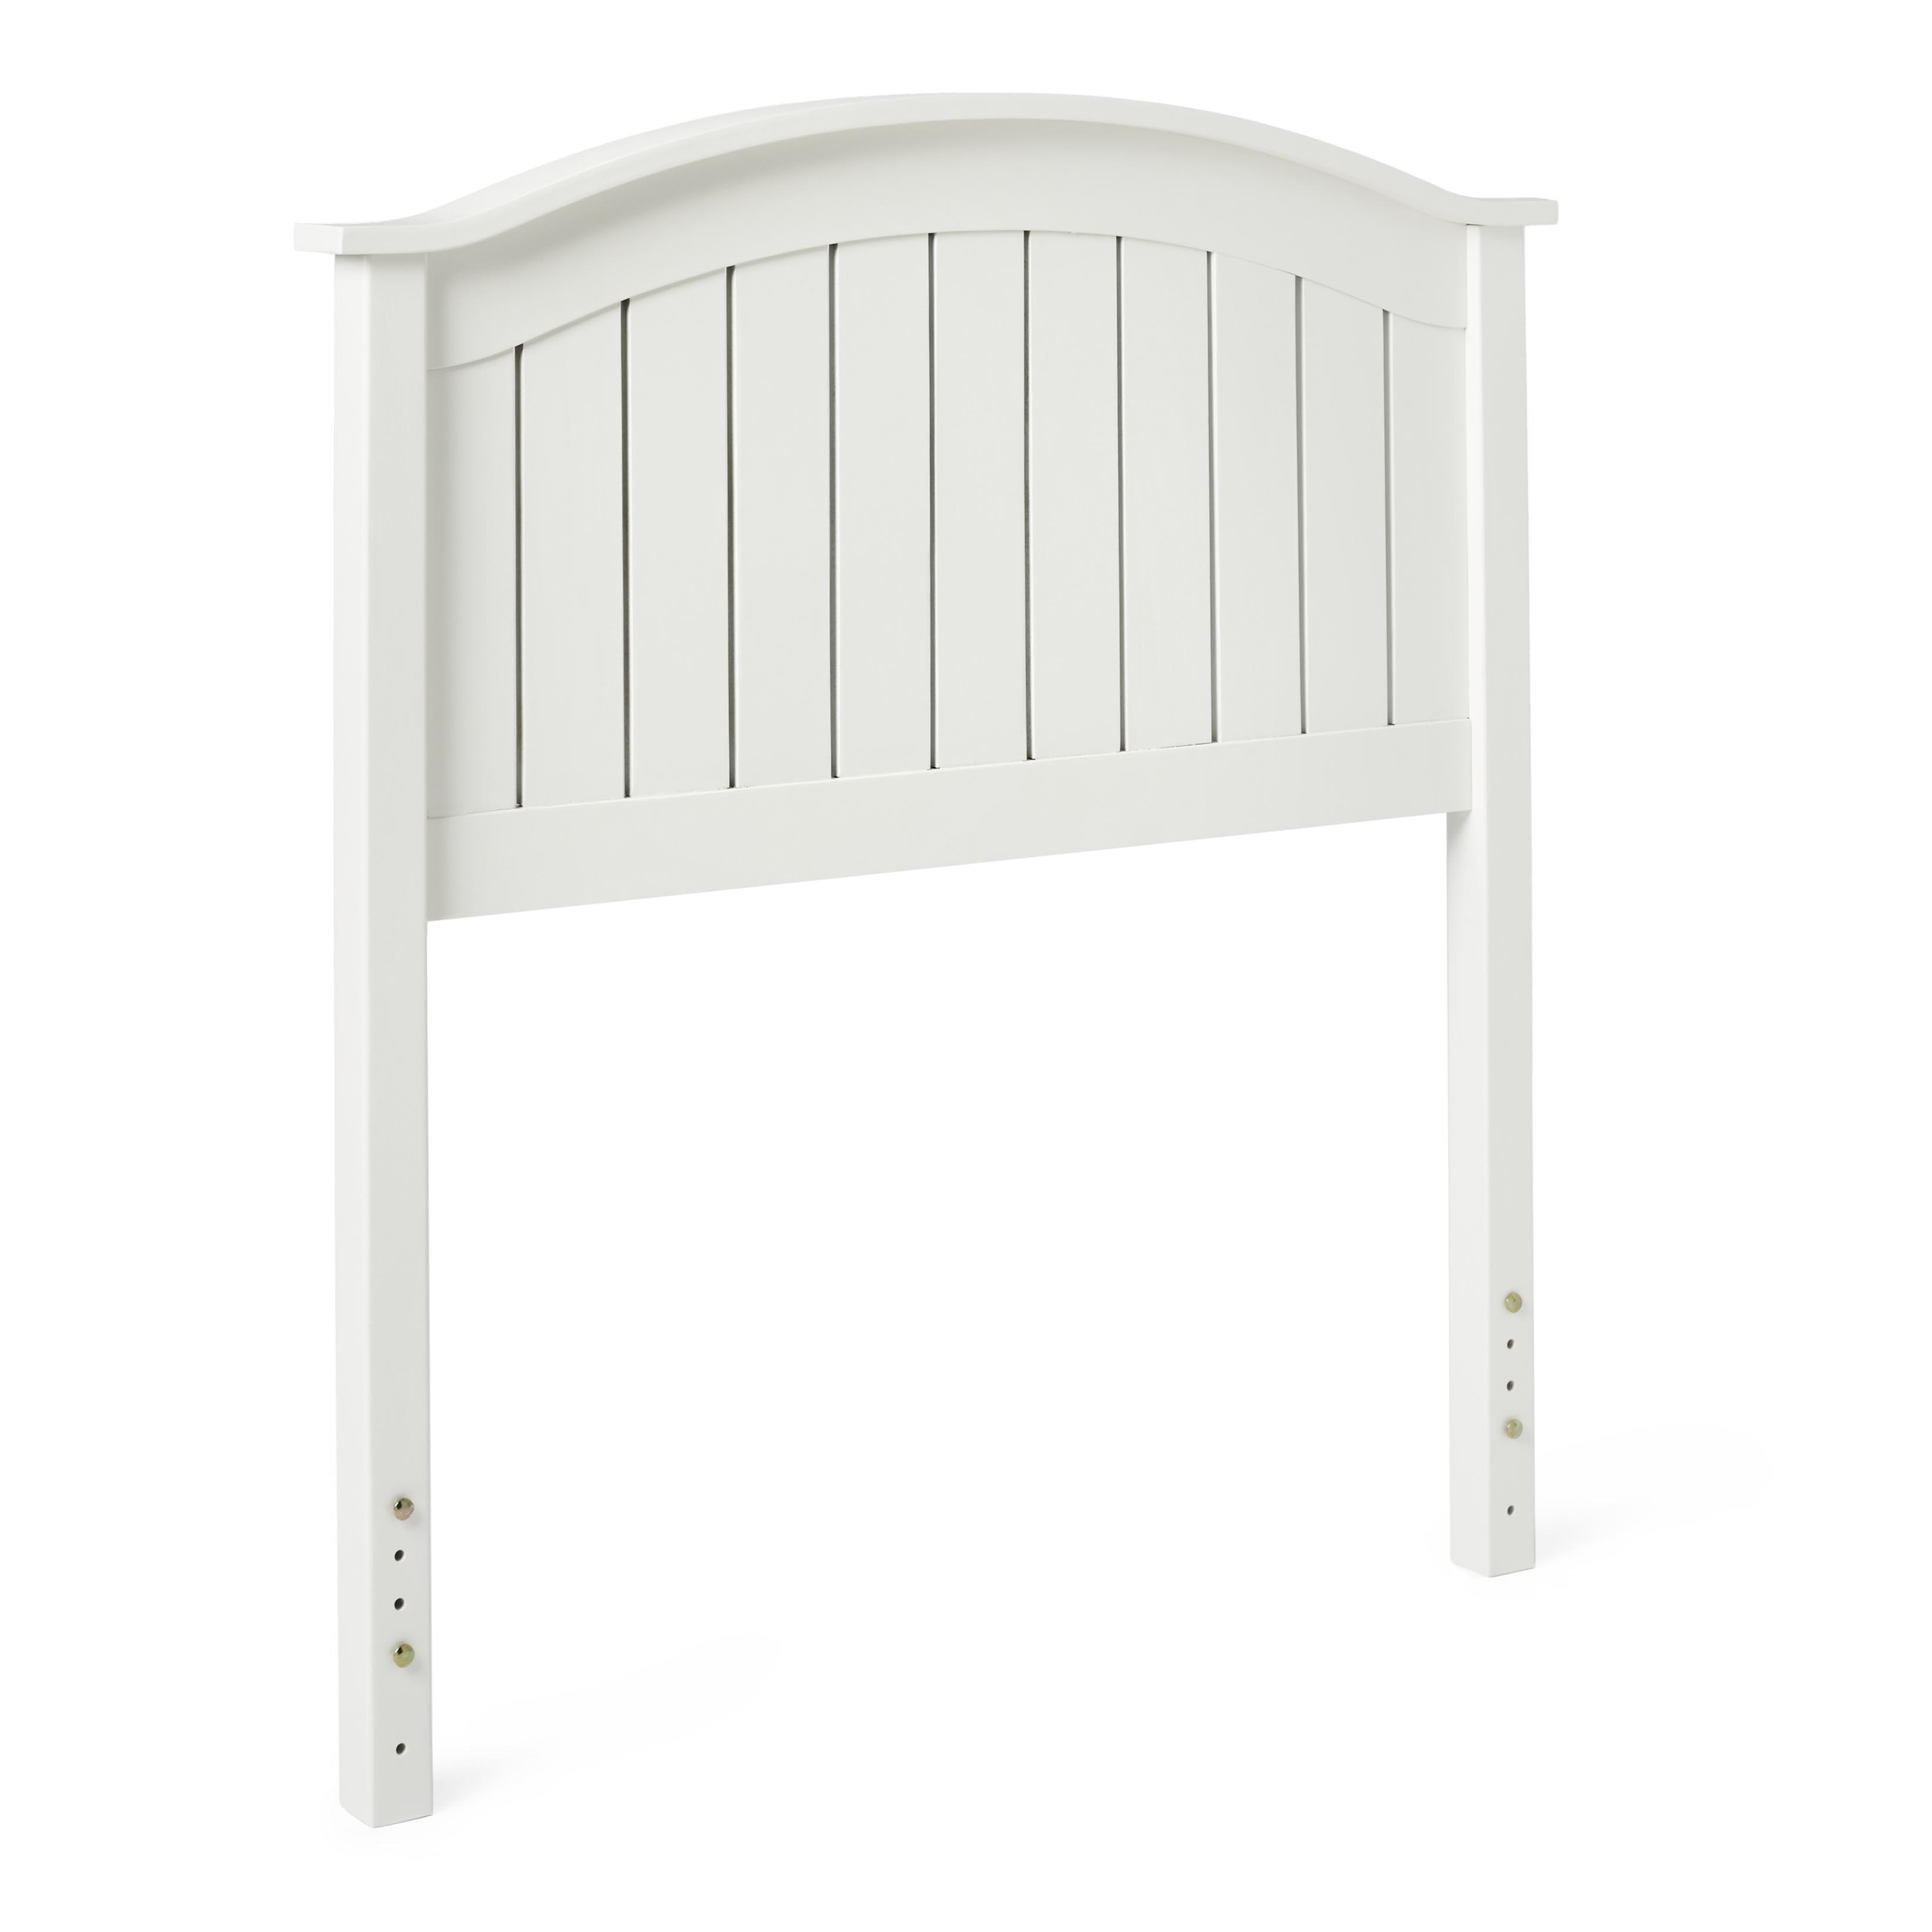 Buy White Wood Headboards line at Overstock